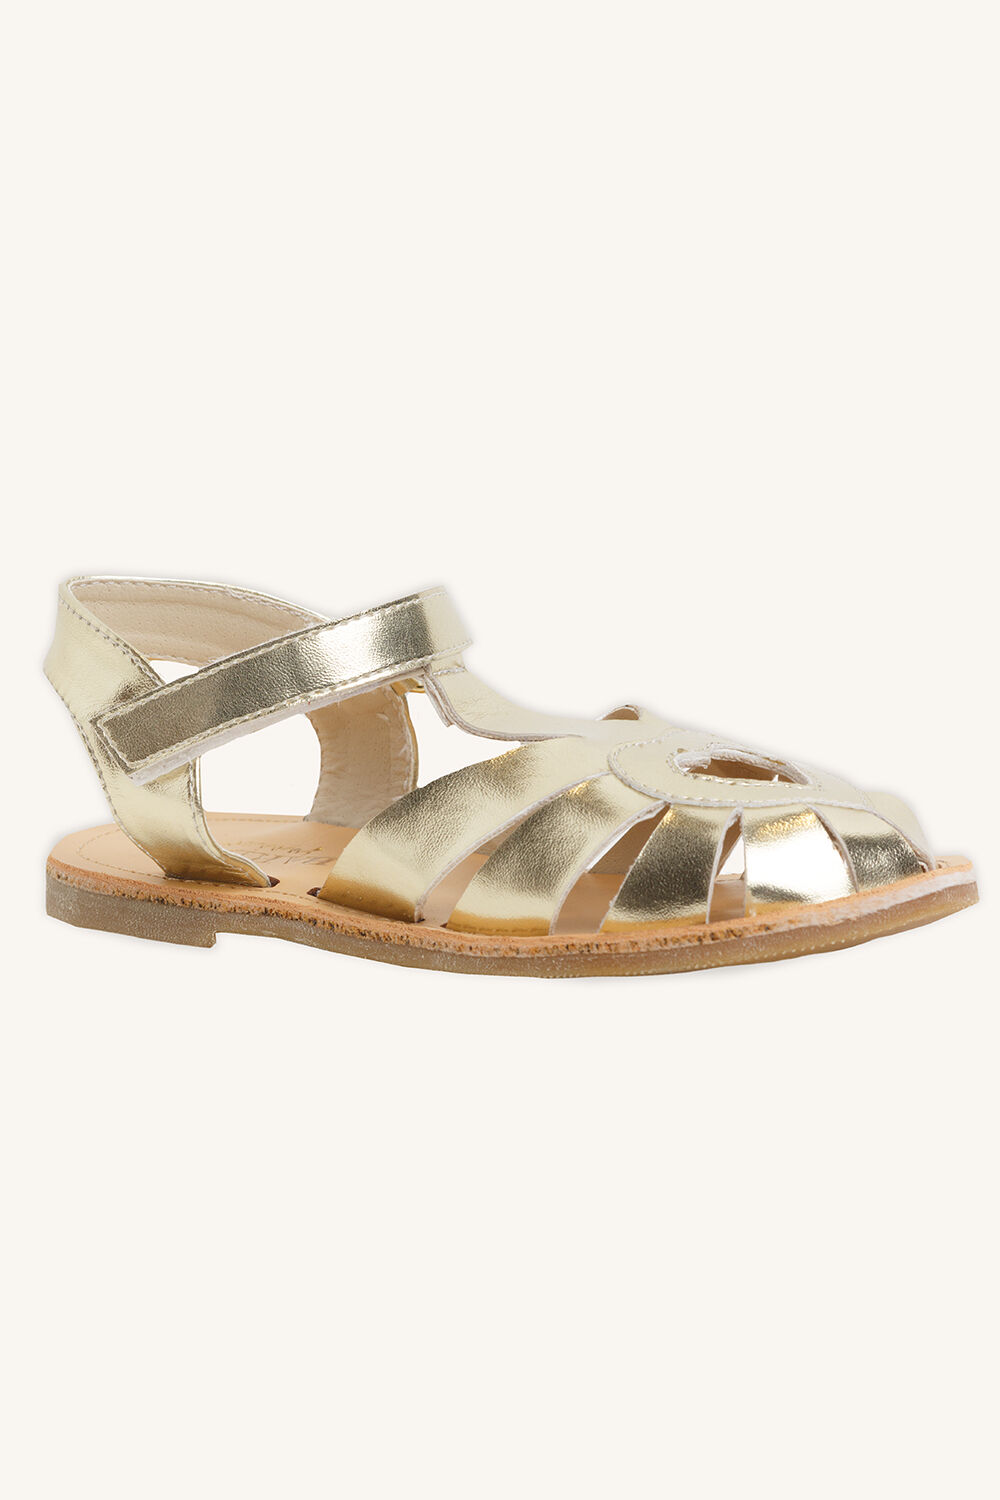 HEART CUT OUT SANDAL in colour GOLD EARTH